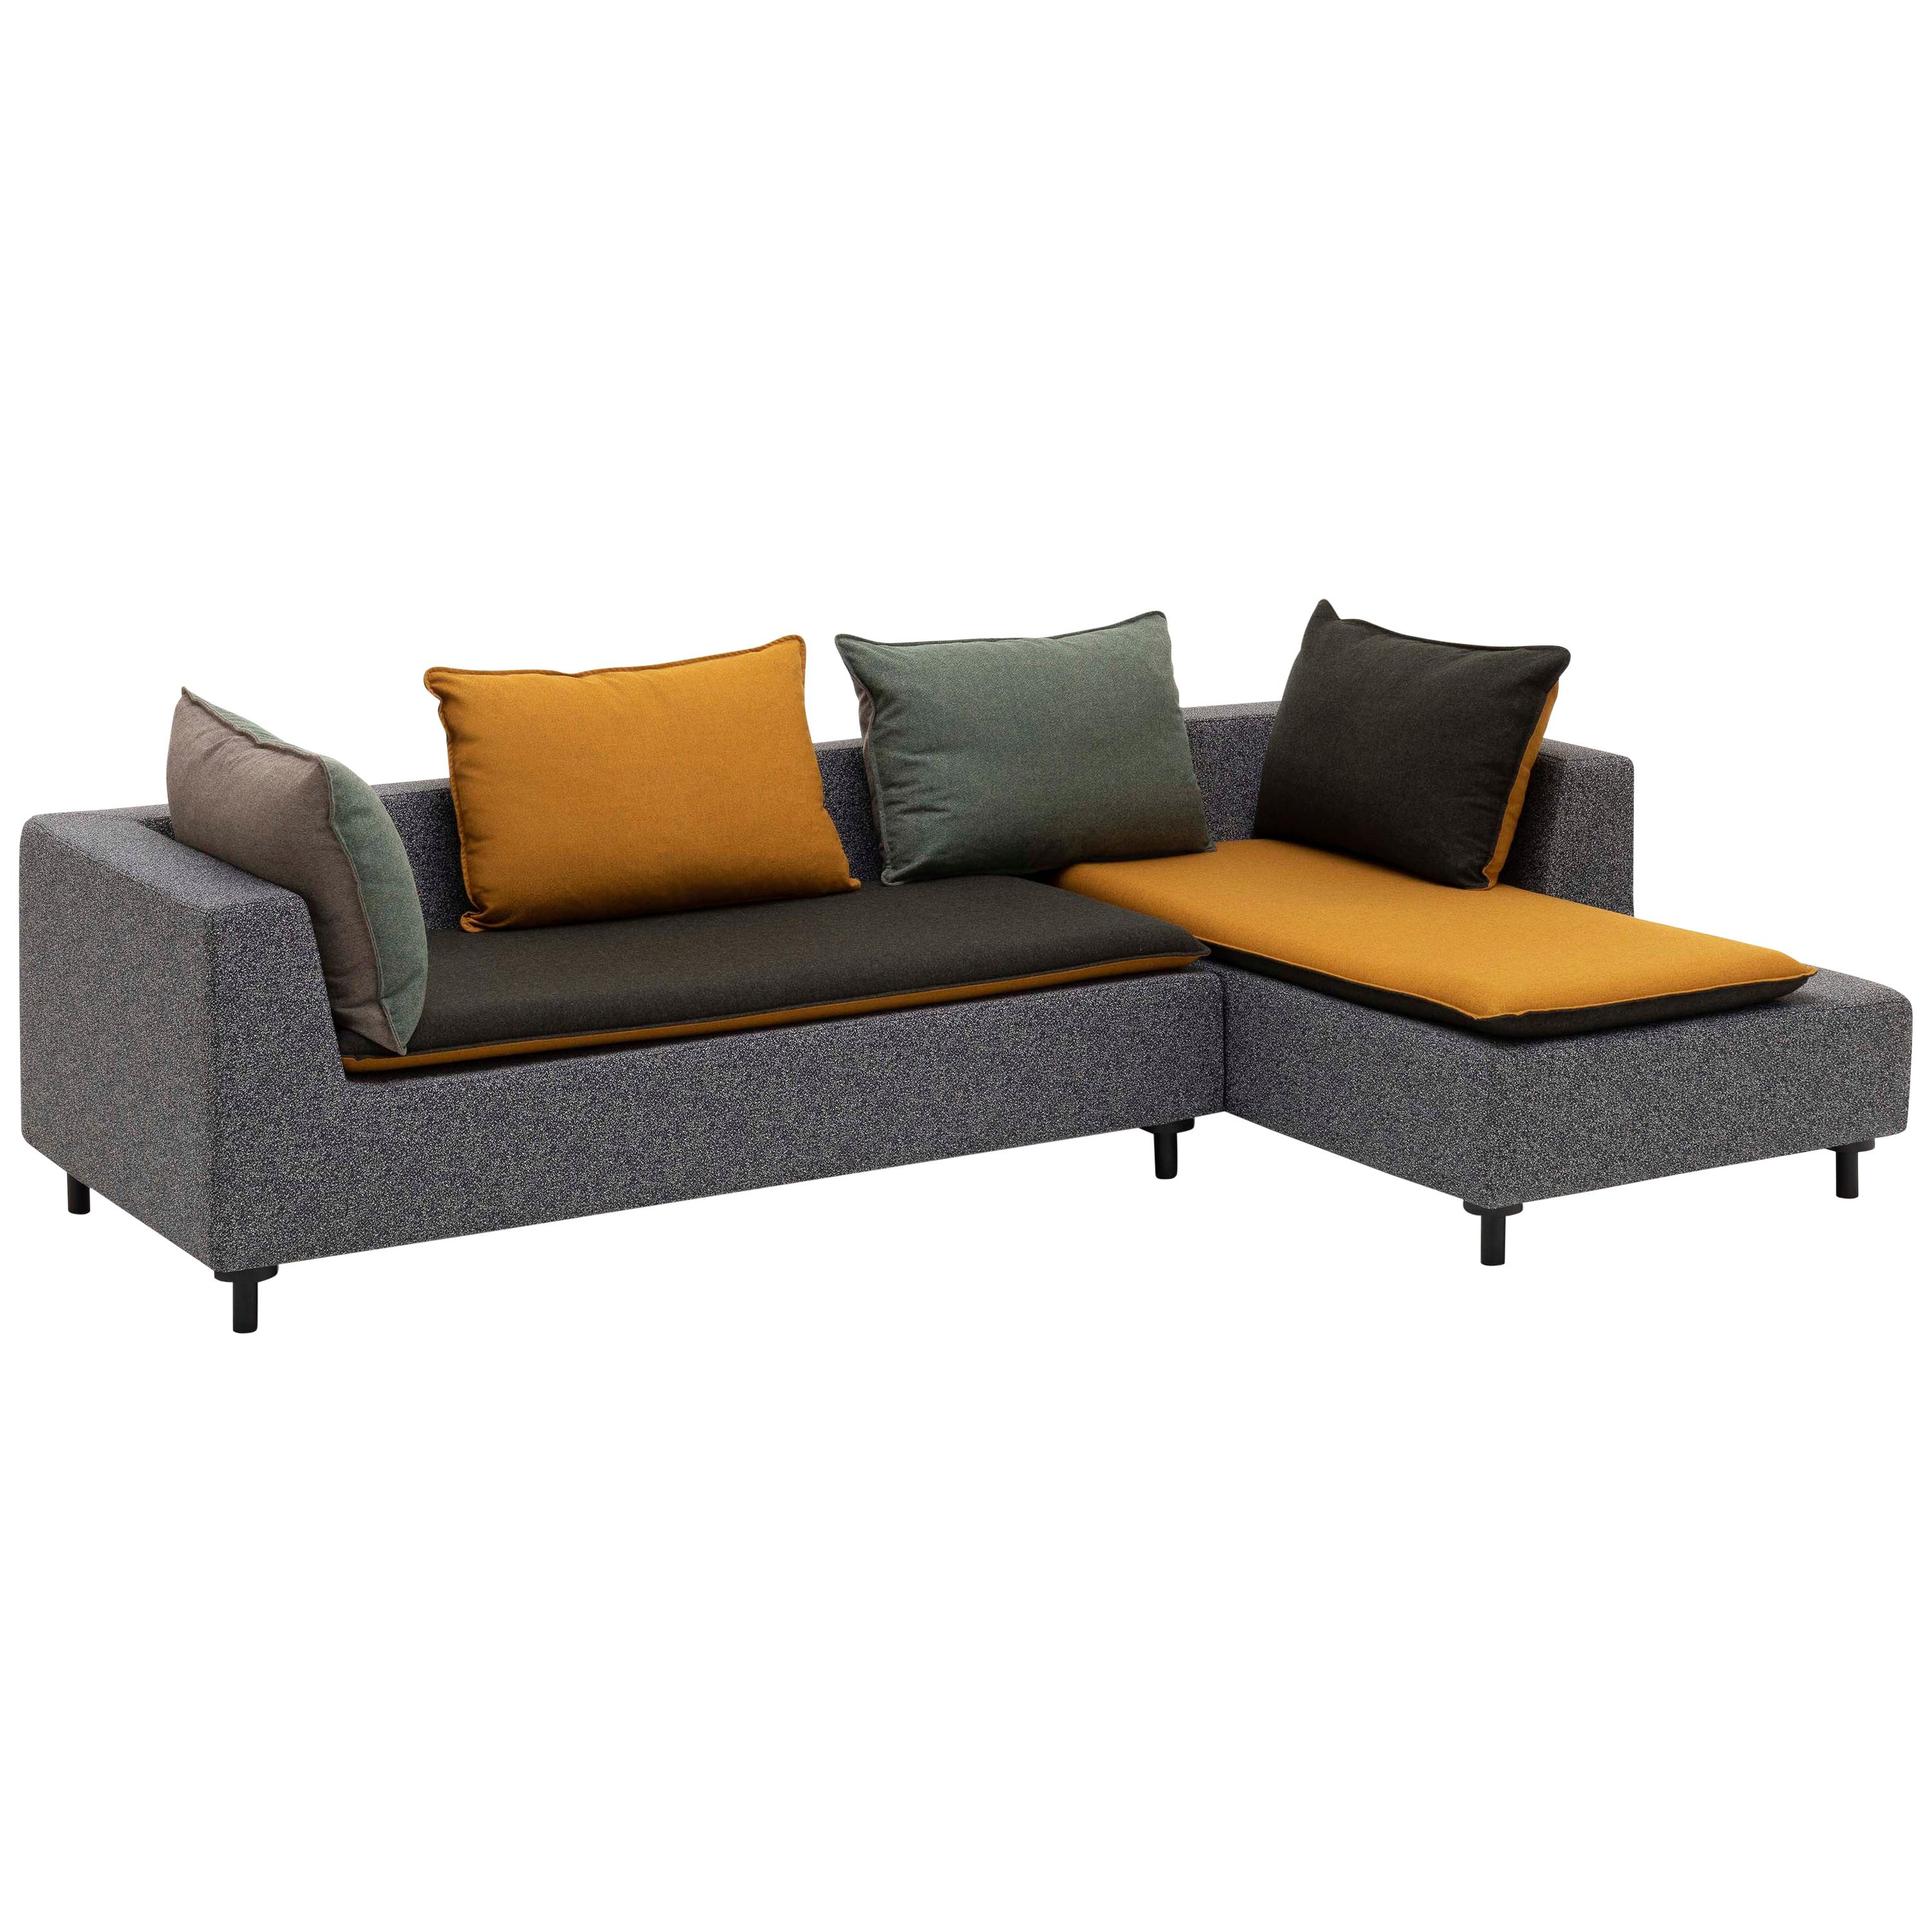 Established & Sons Barbican Sectional with Orange Cushions by Konstantin Grcic